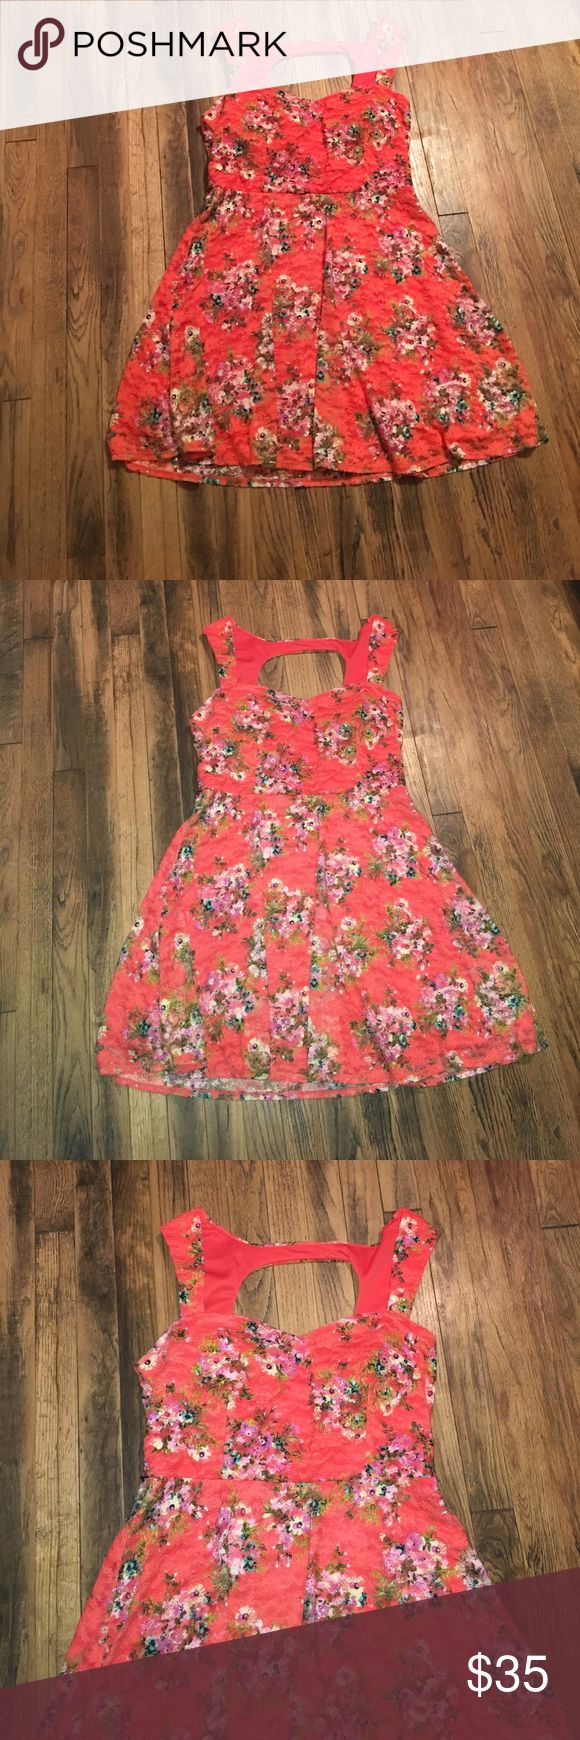 B.smart orange/coral floral dress Zip up in the back. Bust 39in. Waist 33in. Length 35.5. Padded cups in the bust. T12-0234 fully lined B.SMART Dresses Mini